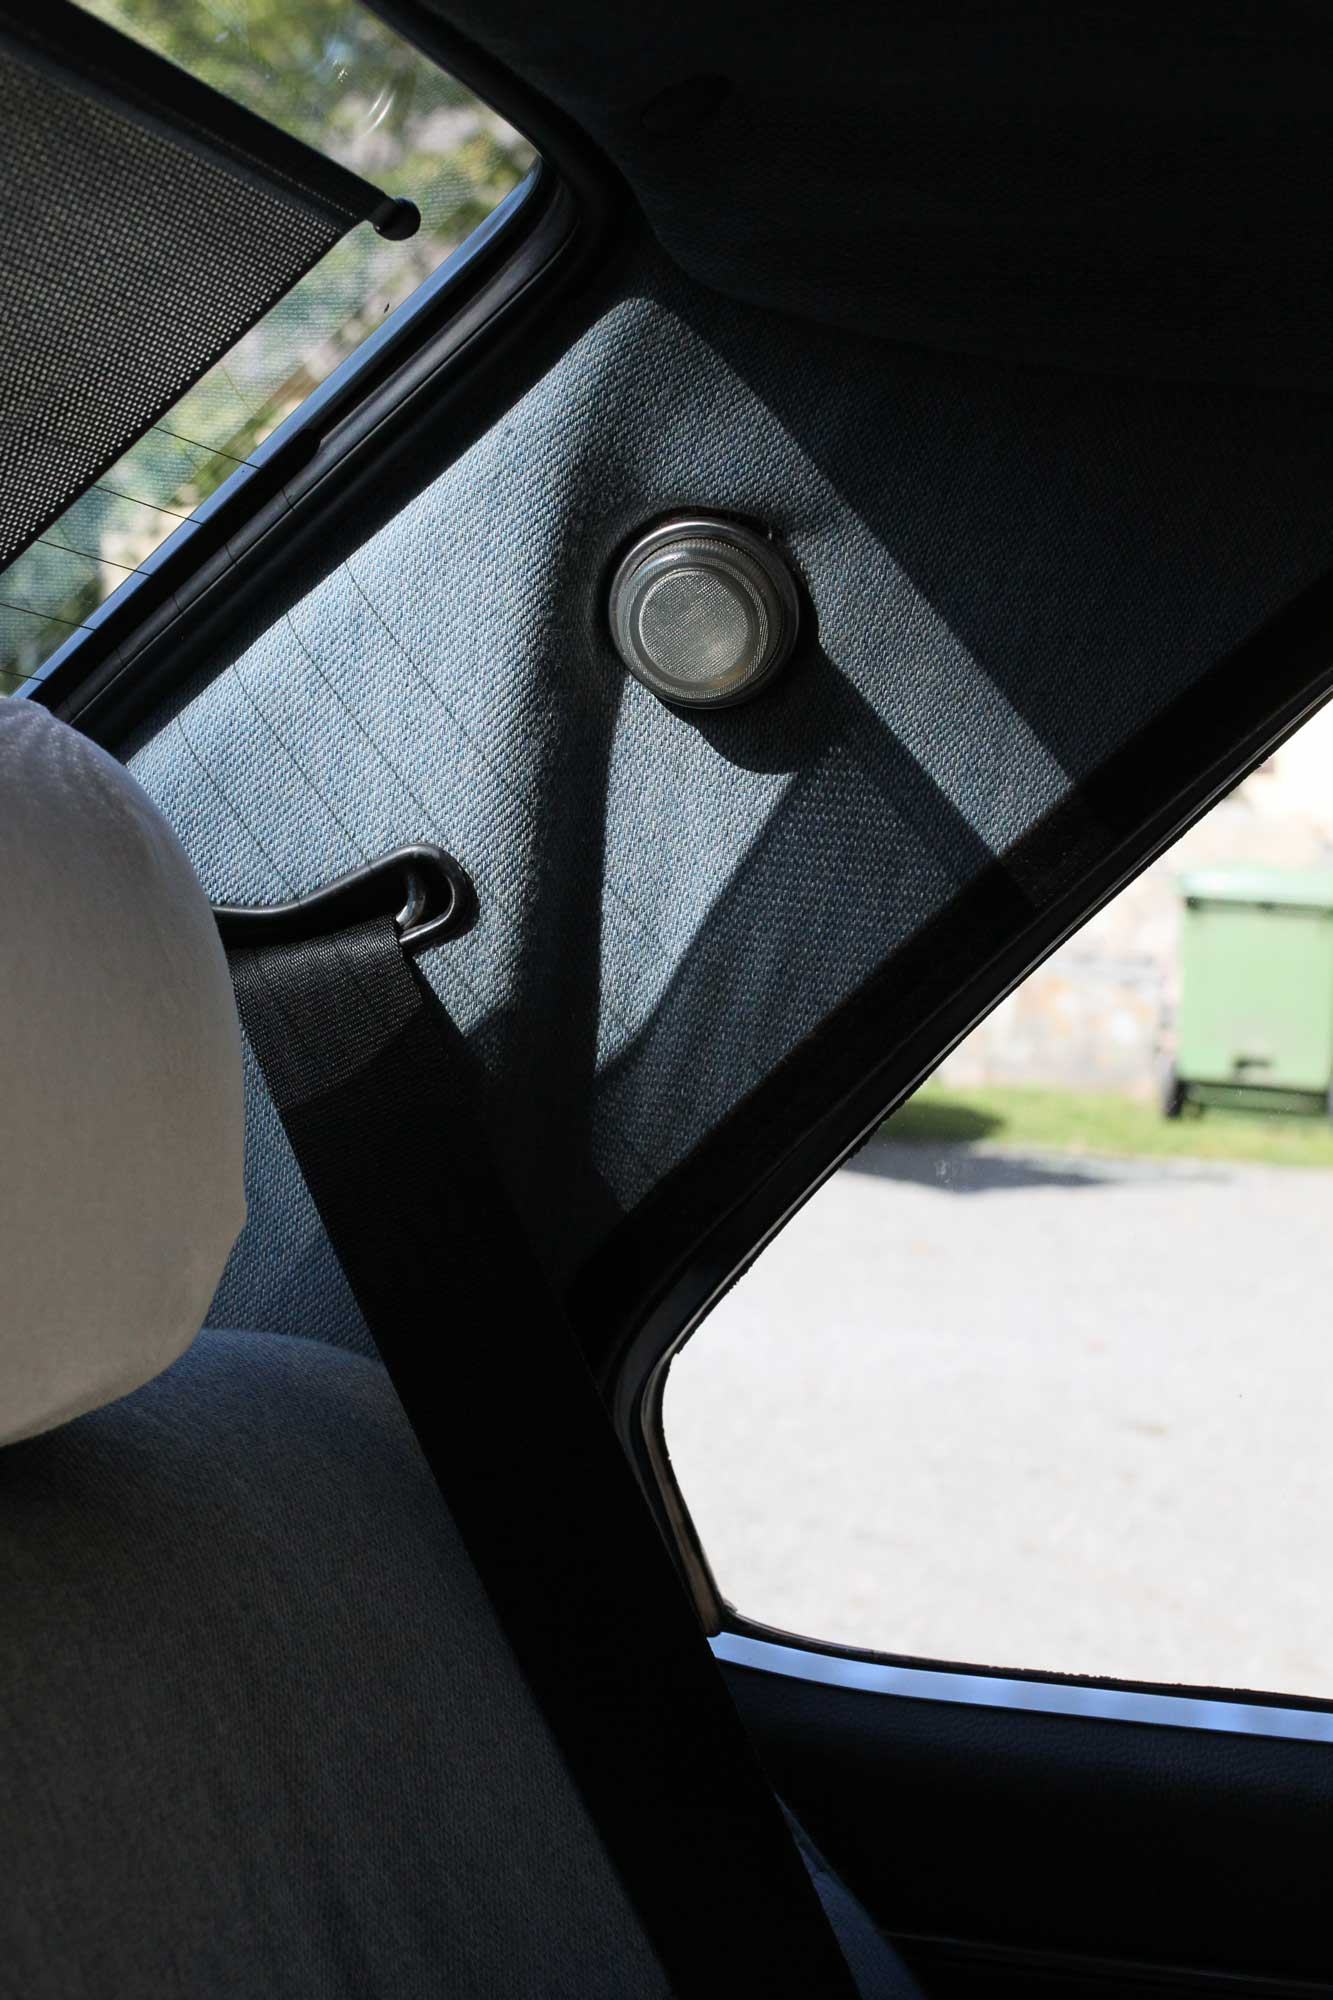 backseat lamp on a fiat argenta